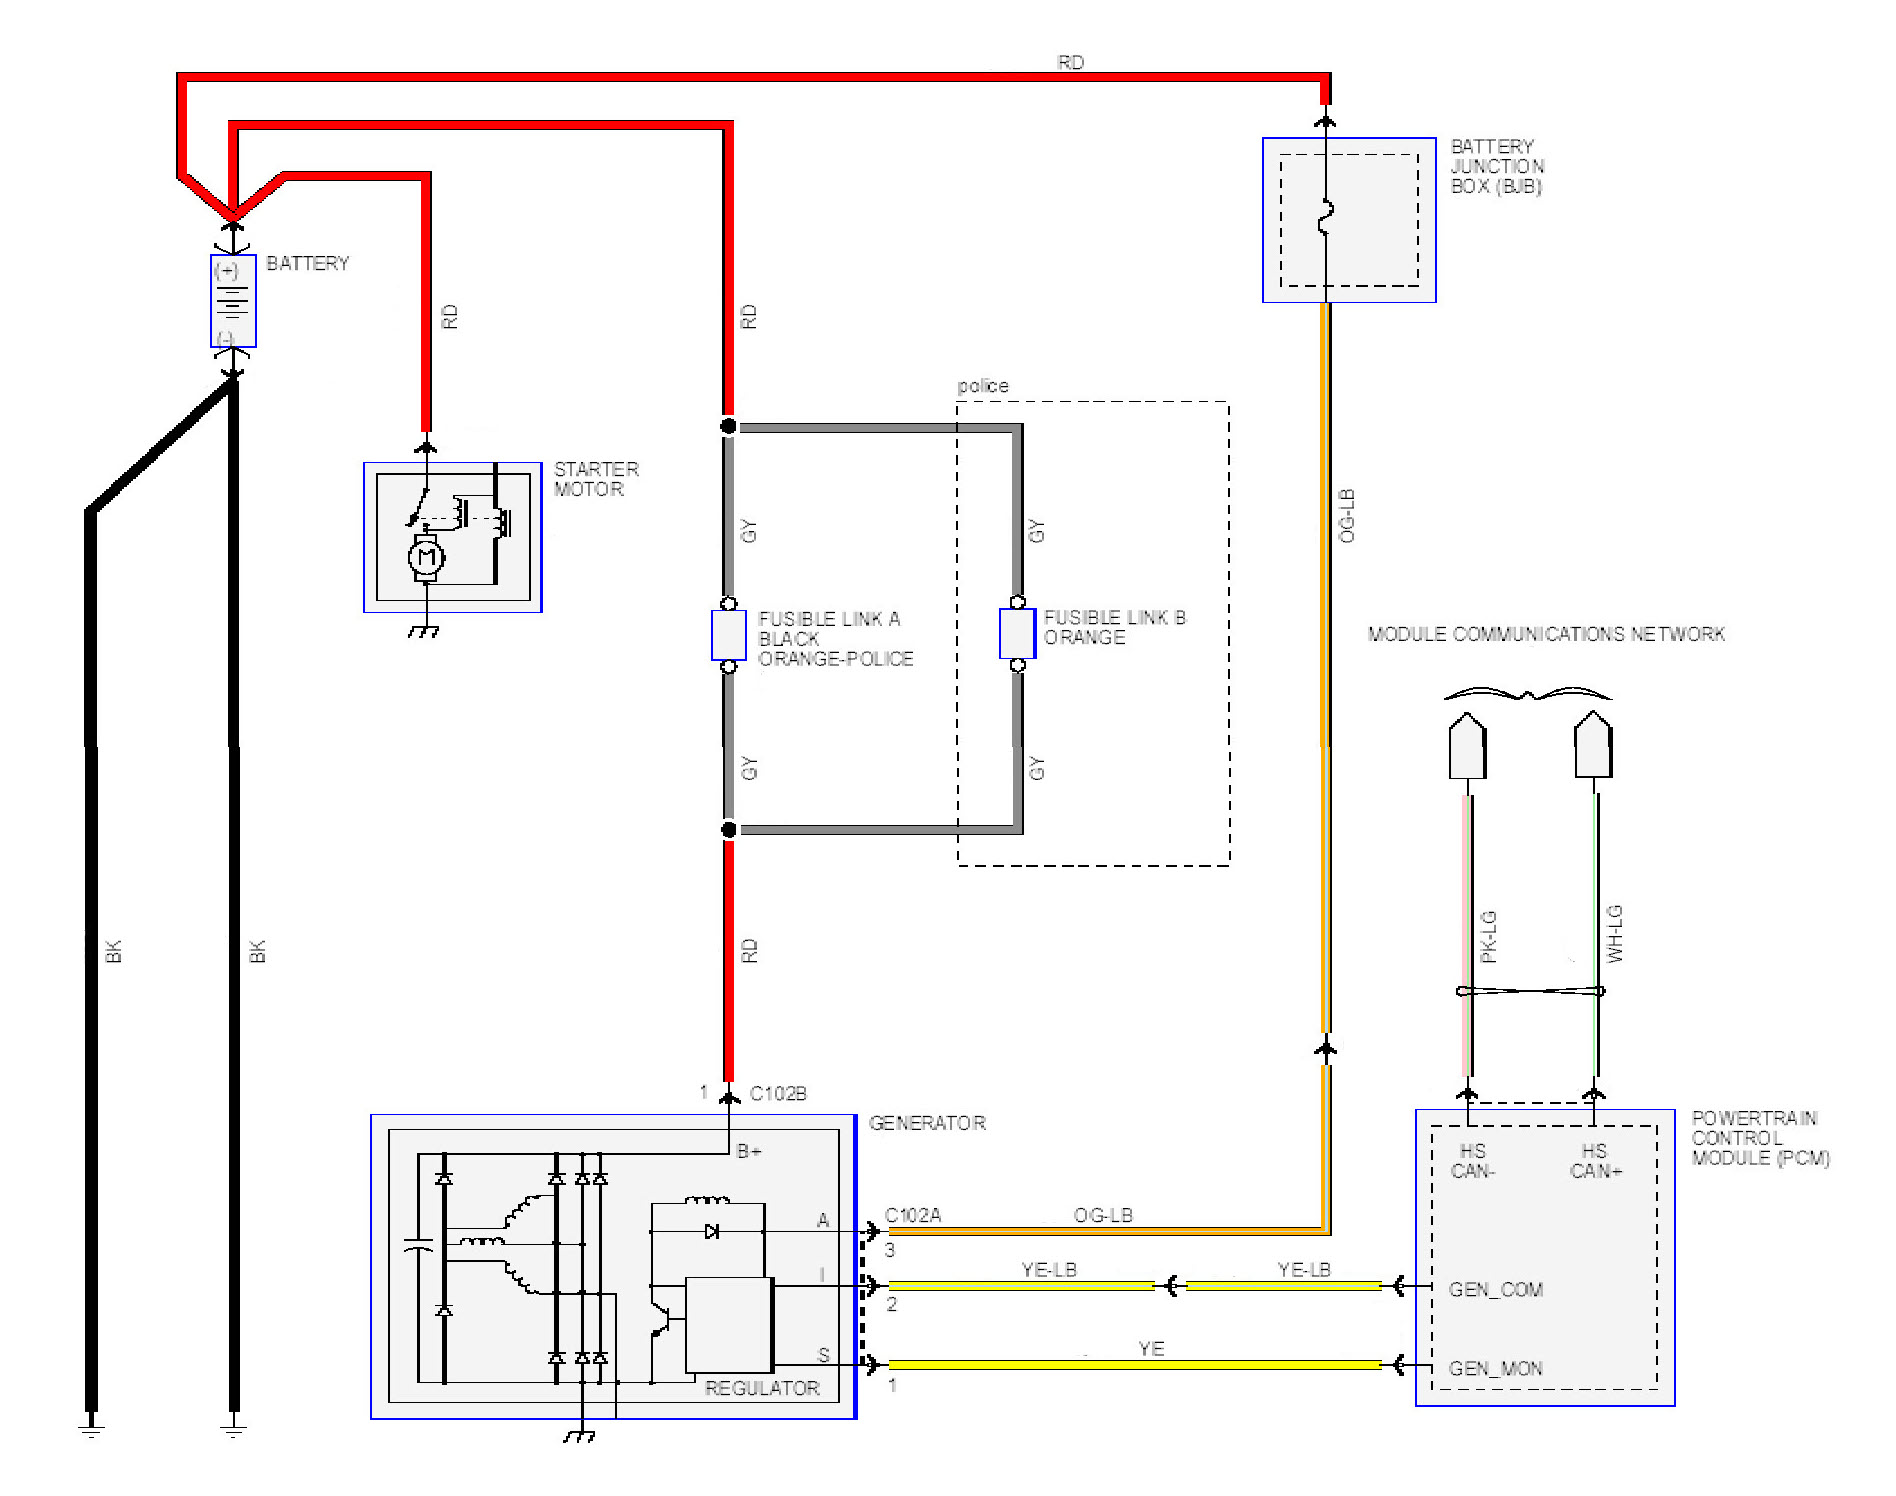 10crownviccharge ford crown victoria alternator wiring diagrams 1999 F150 Radio Wiring Diagram at crackthecode.co